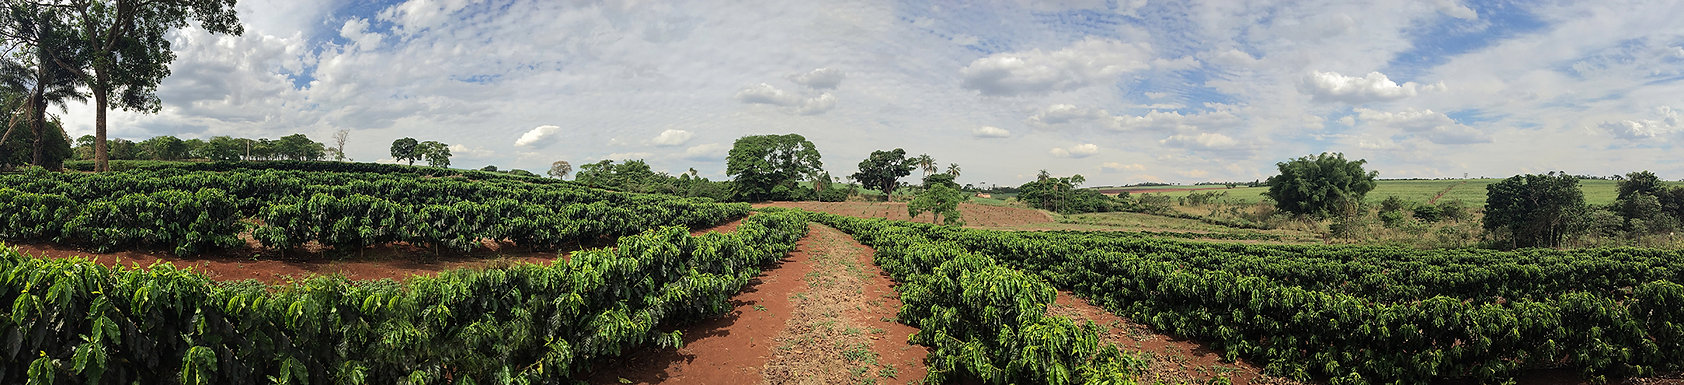 coffee-plantation.jpg